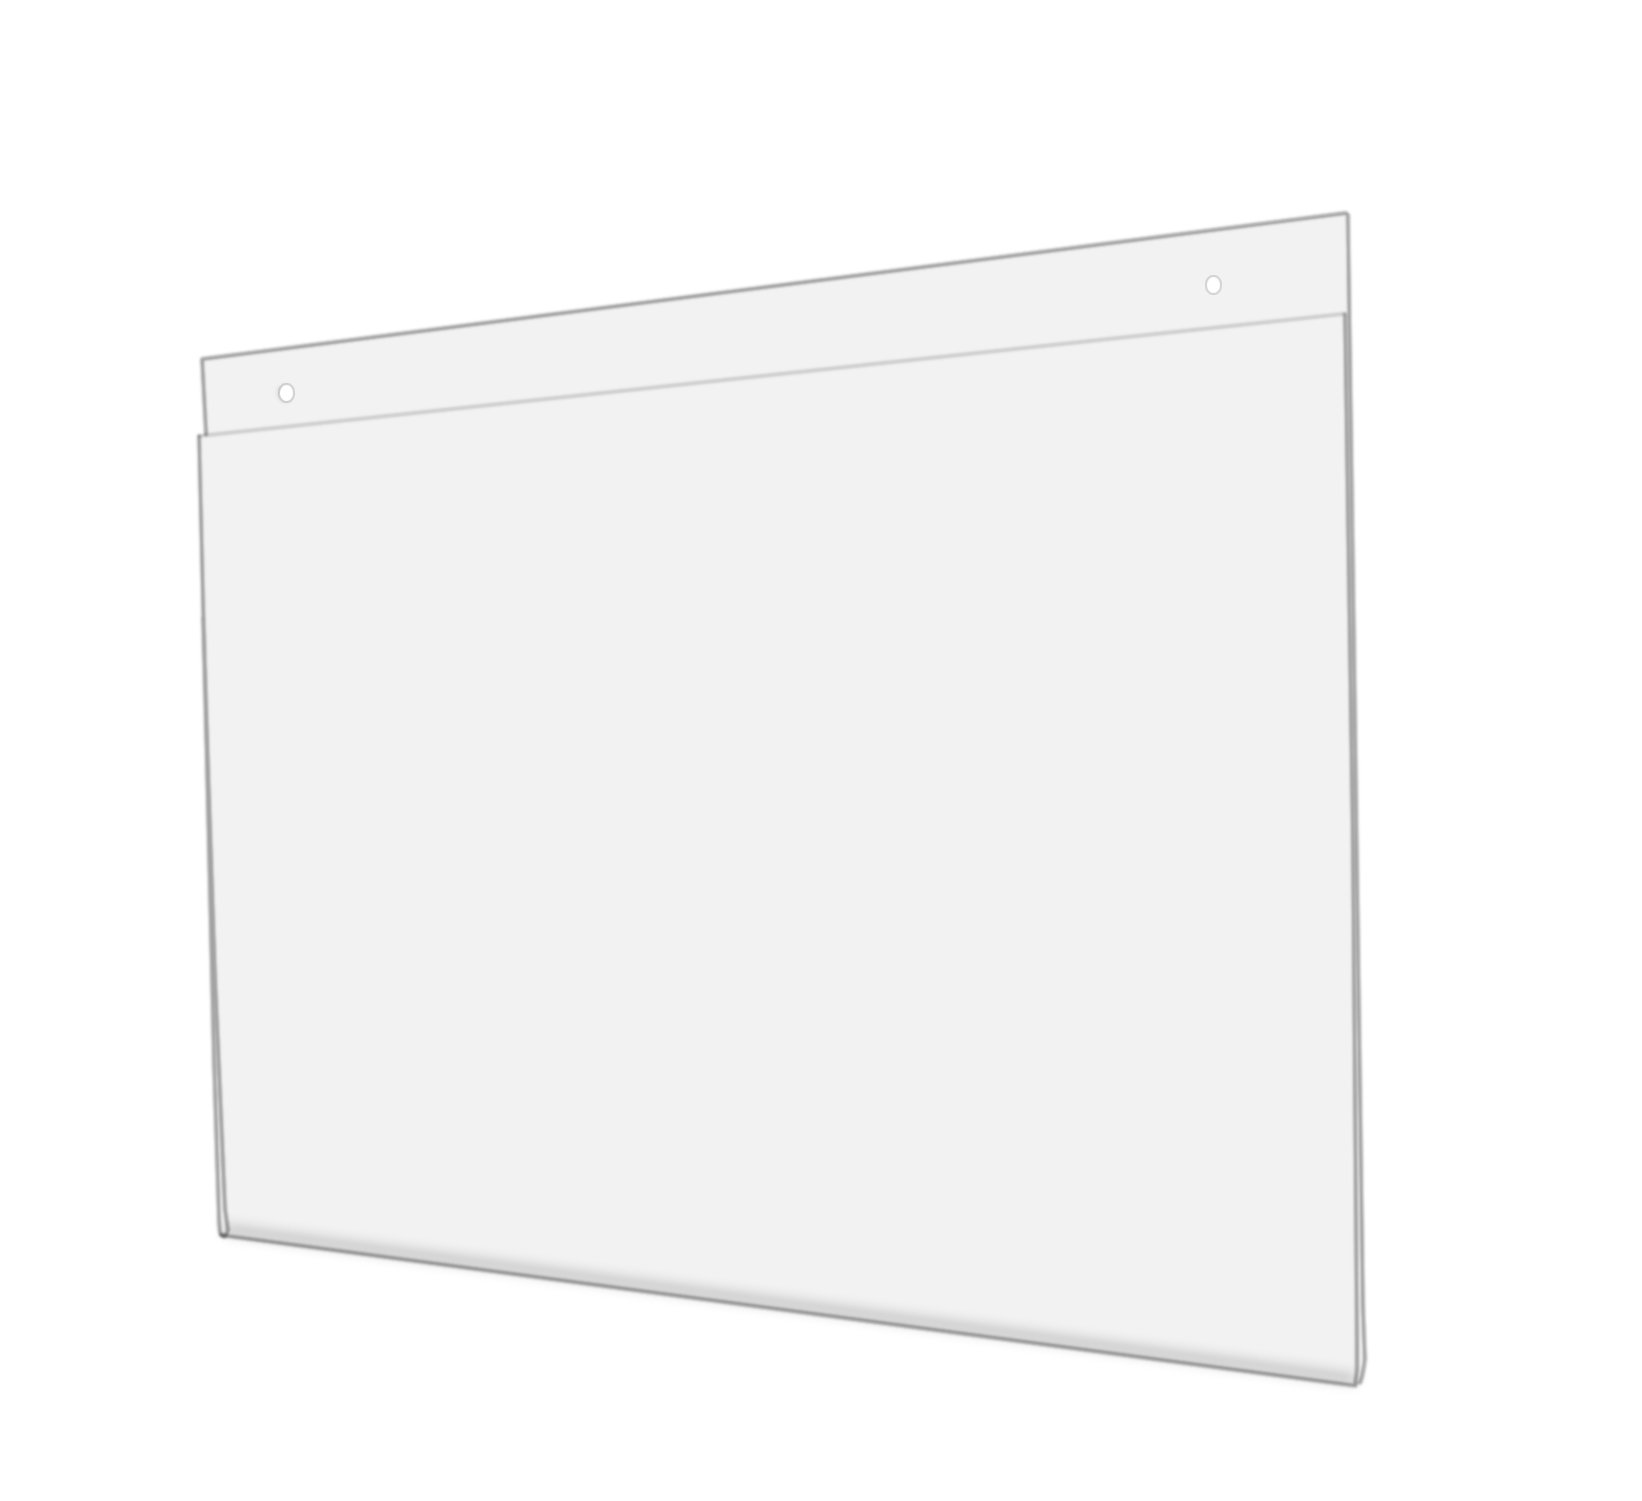 Marketing Holders Wall Mount Sign Holder Clear Ad Display Frame Acrylic Wholesale 17''w X 11''h With Holes Lot of 20 by Marketing Holders (Image #1)